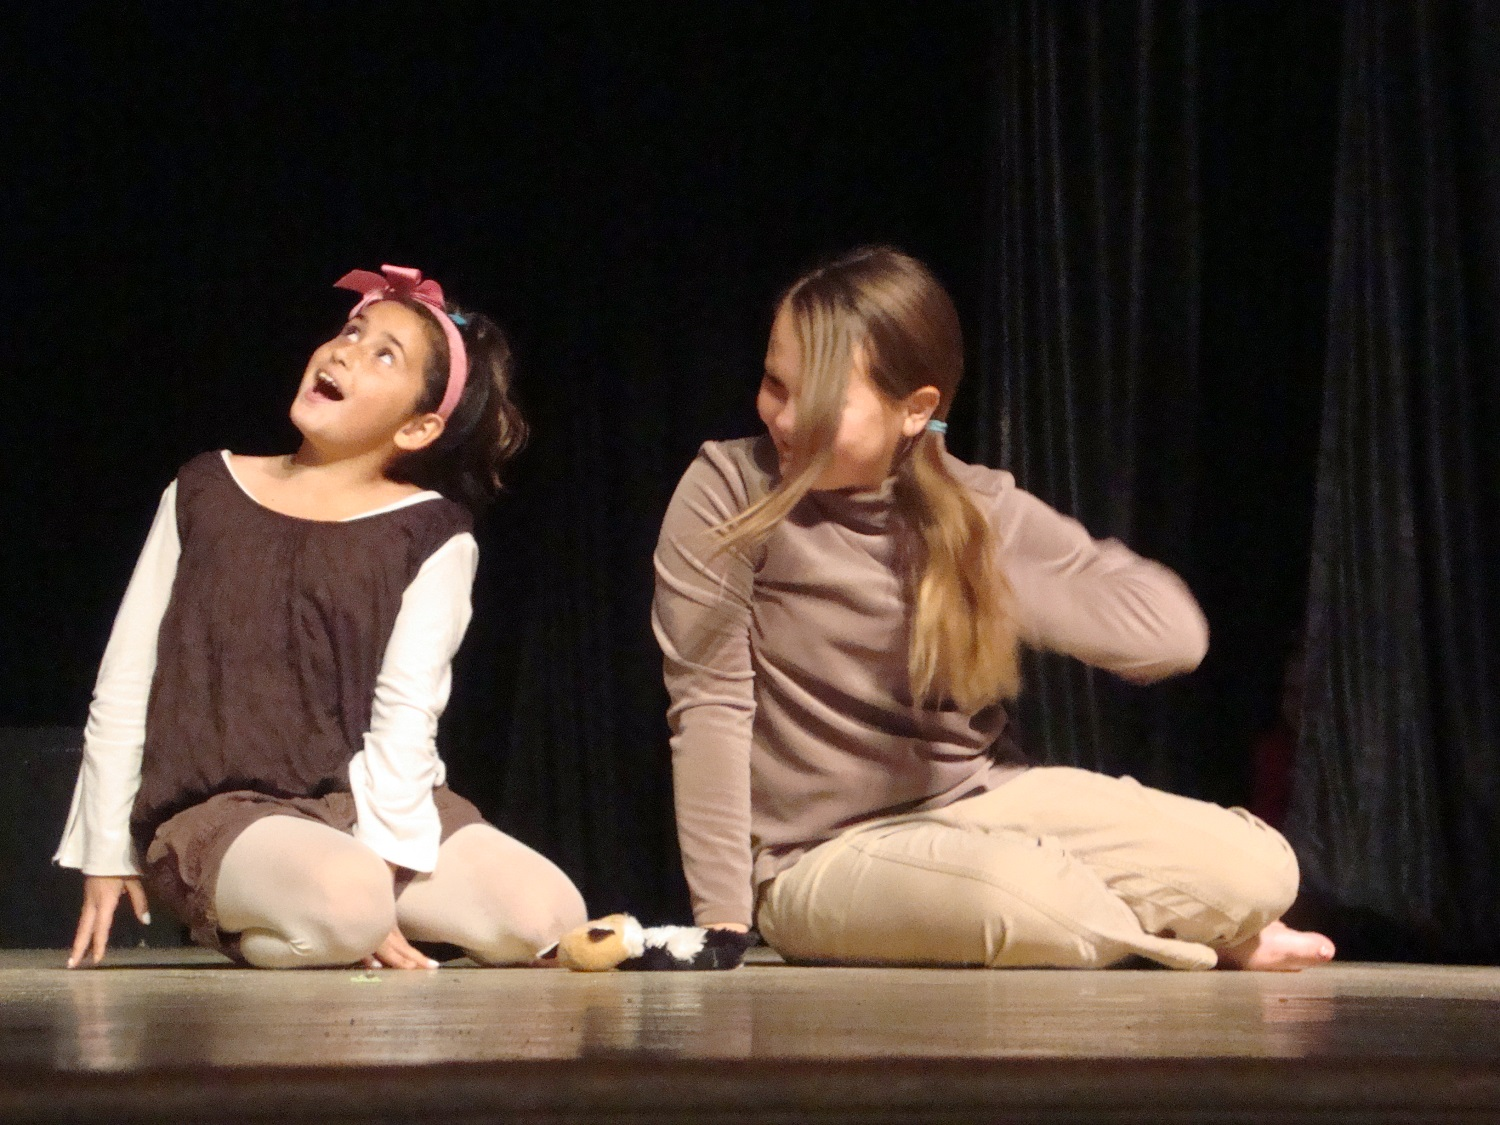 Rivergold students Mollie Villanueva and Hailey Keller are just two of the members of the Rivergold Young Actors Studio - courtesy of Rivergold